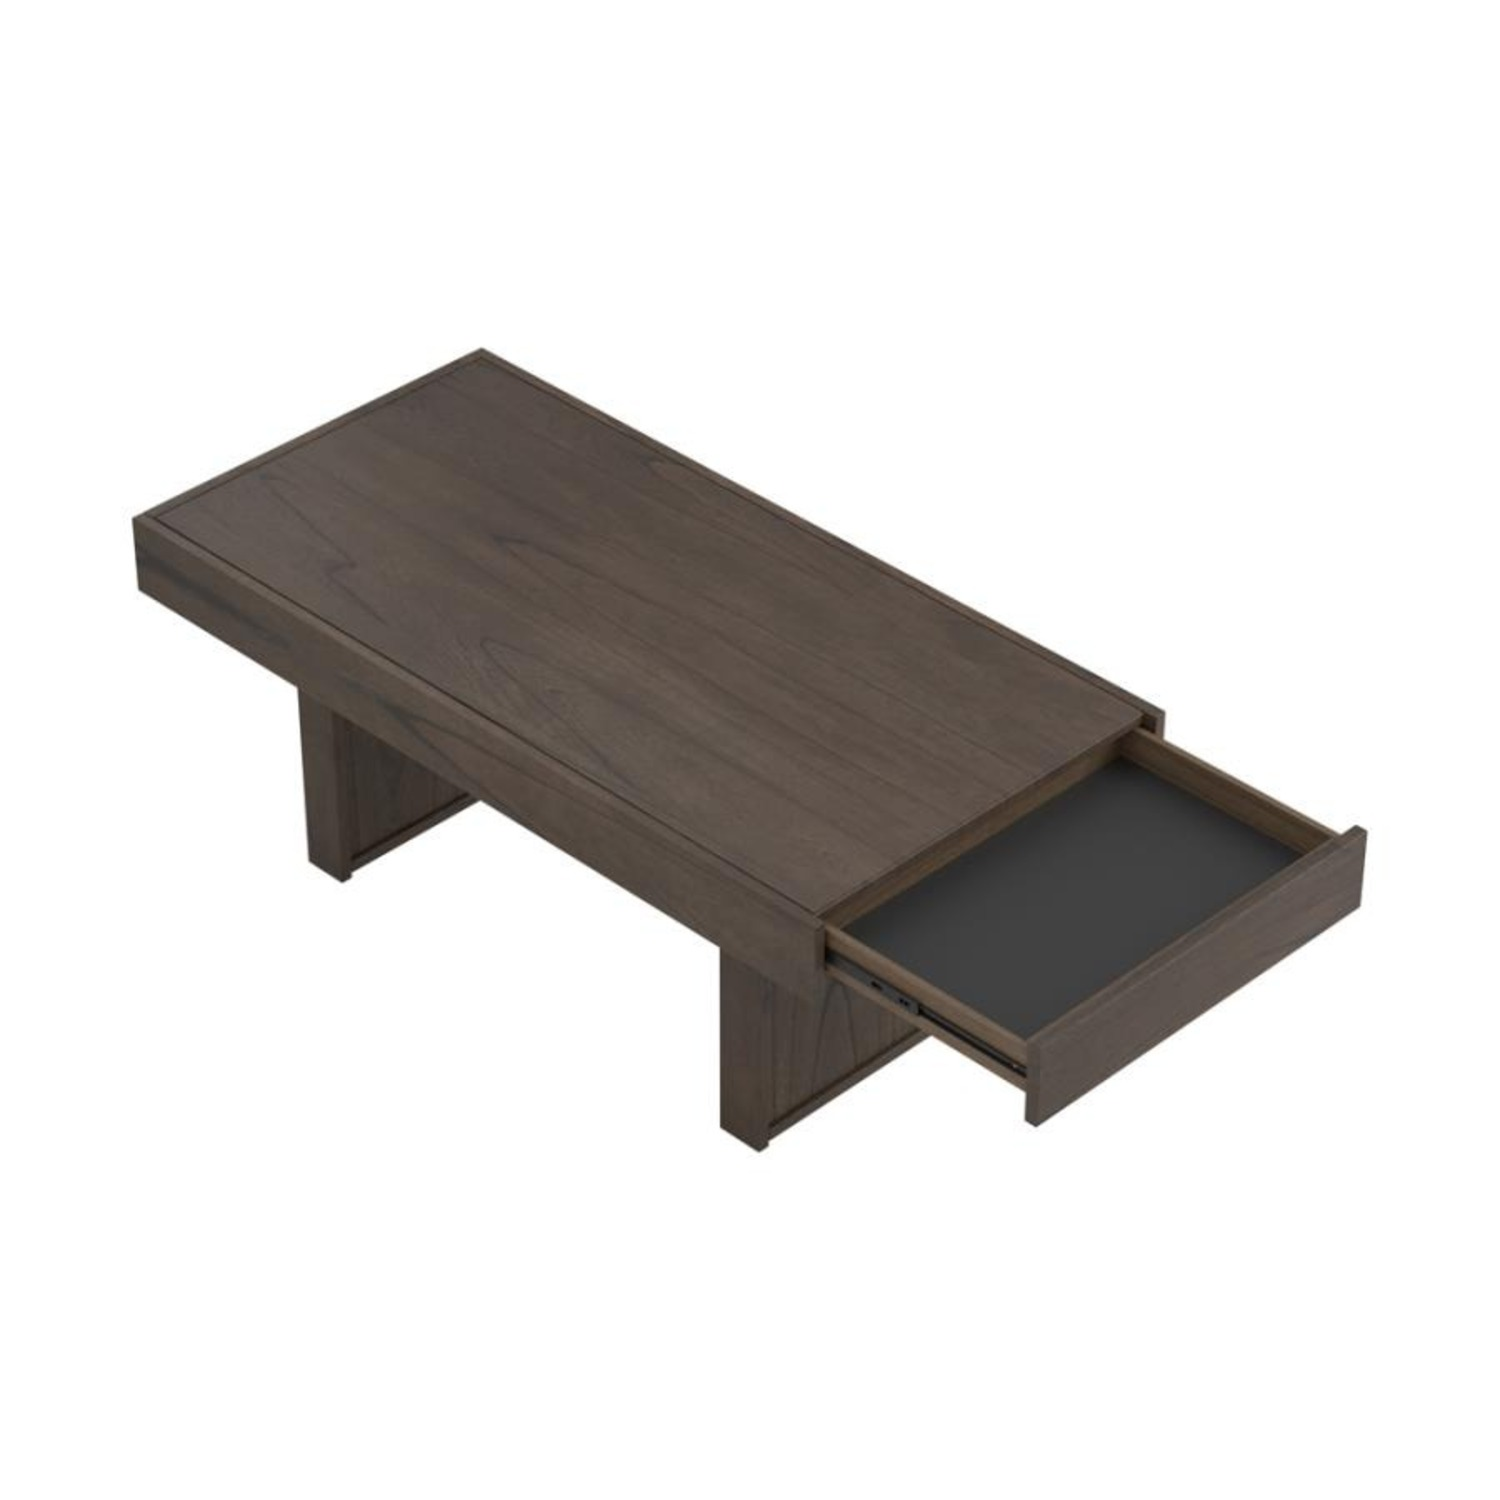 Coffee Table In Wheat Brown Finish - image-5